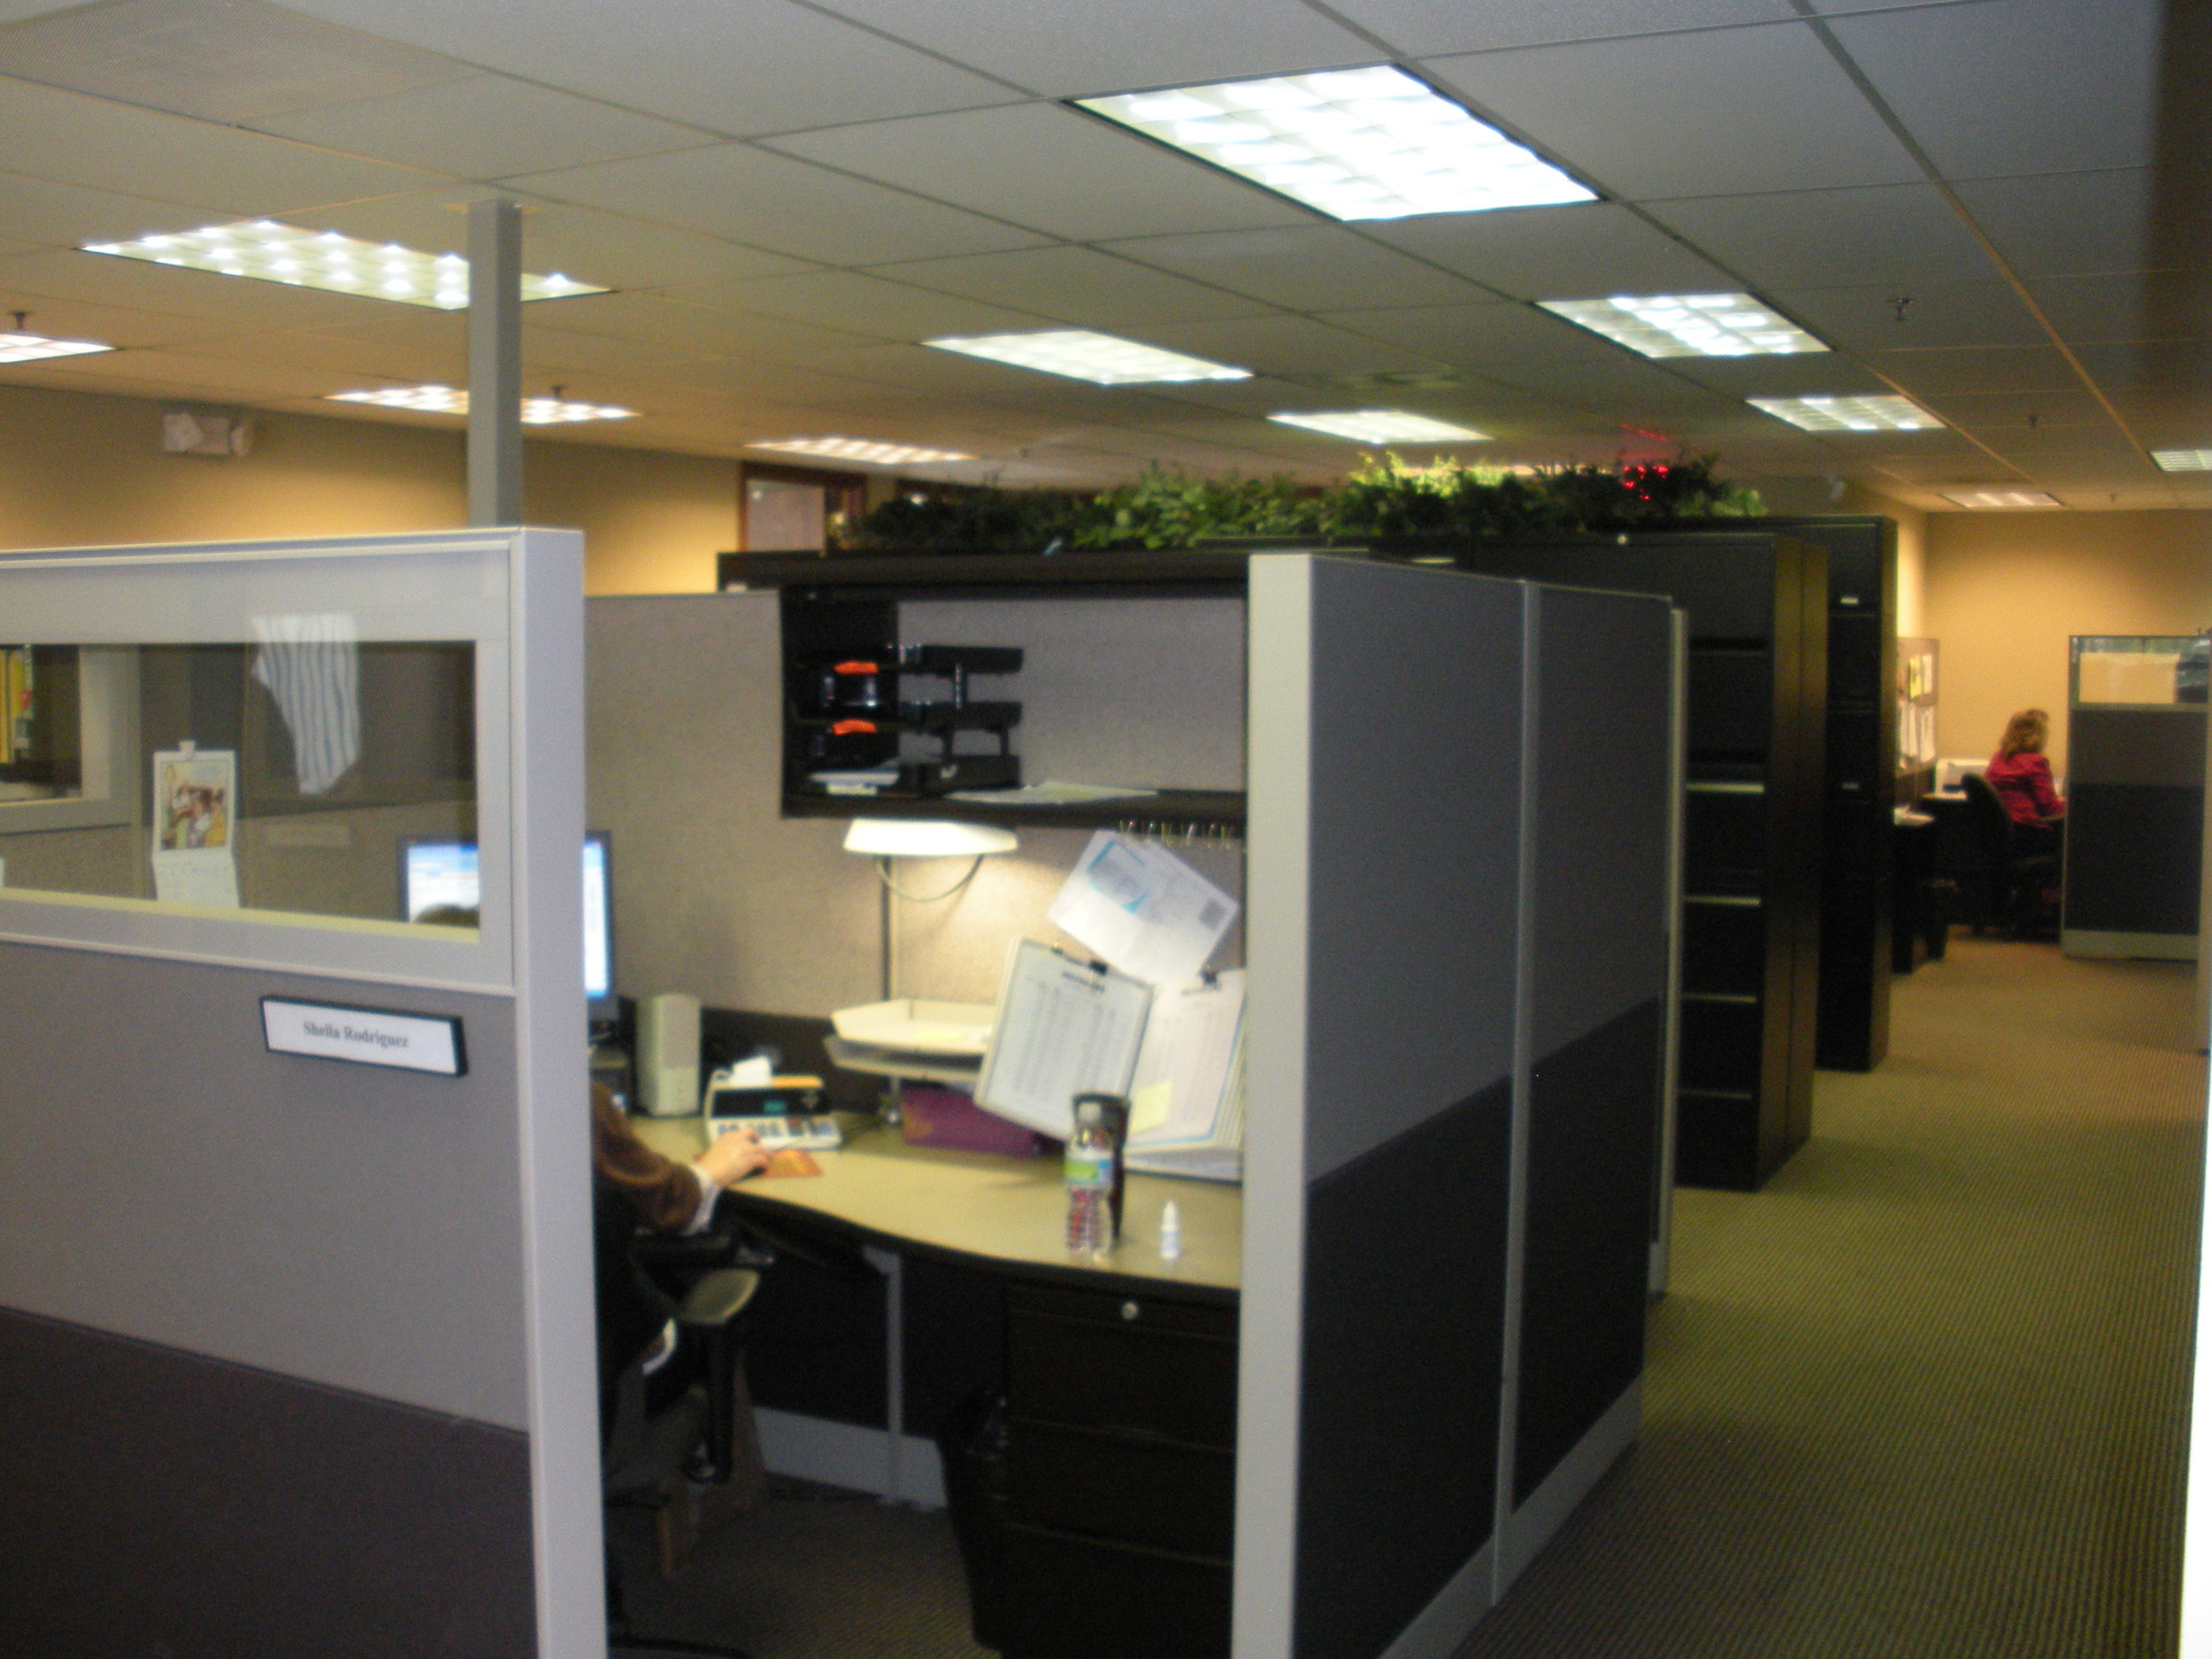 Work pictures 009.jpg